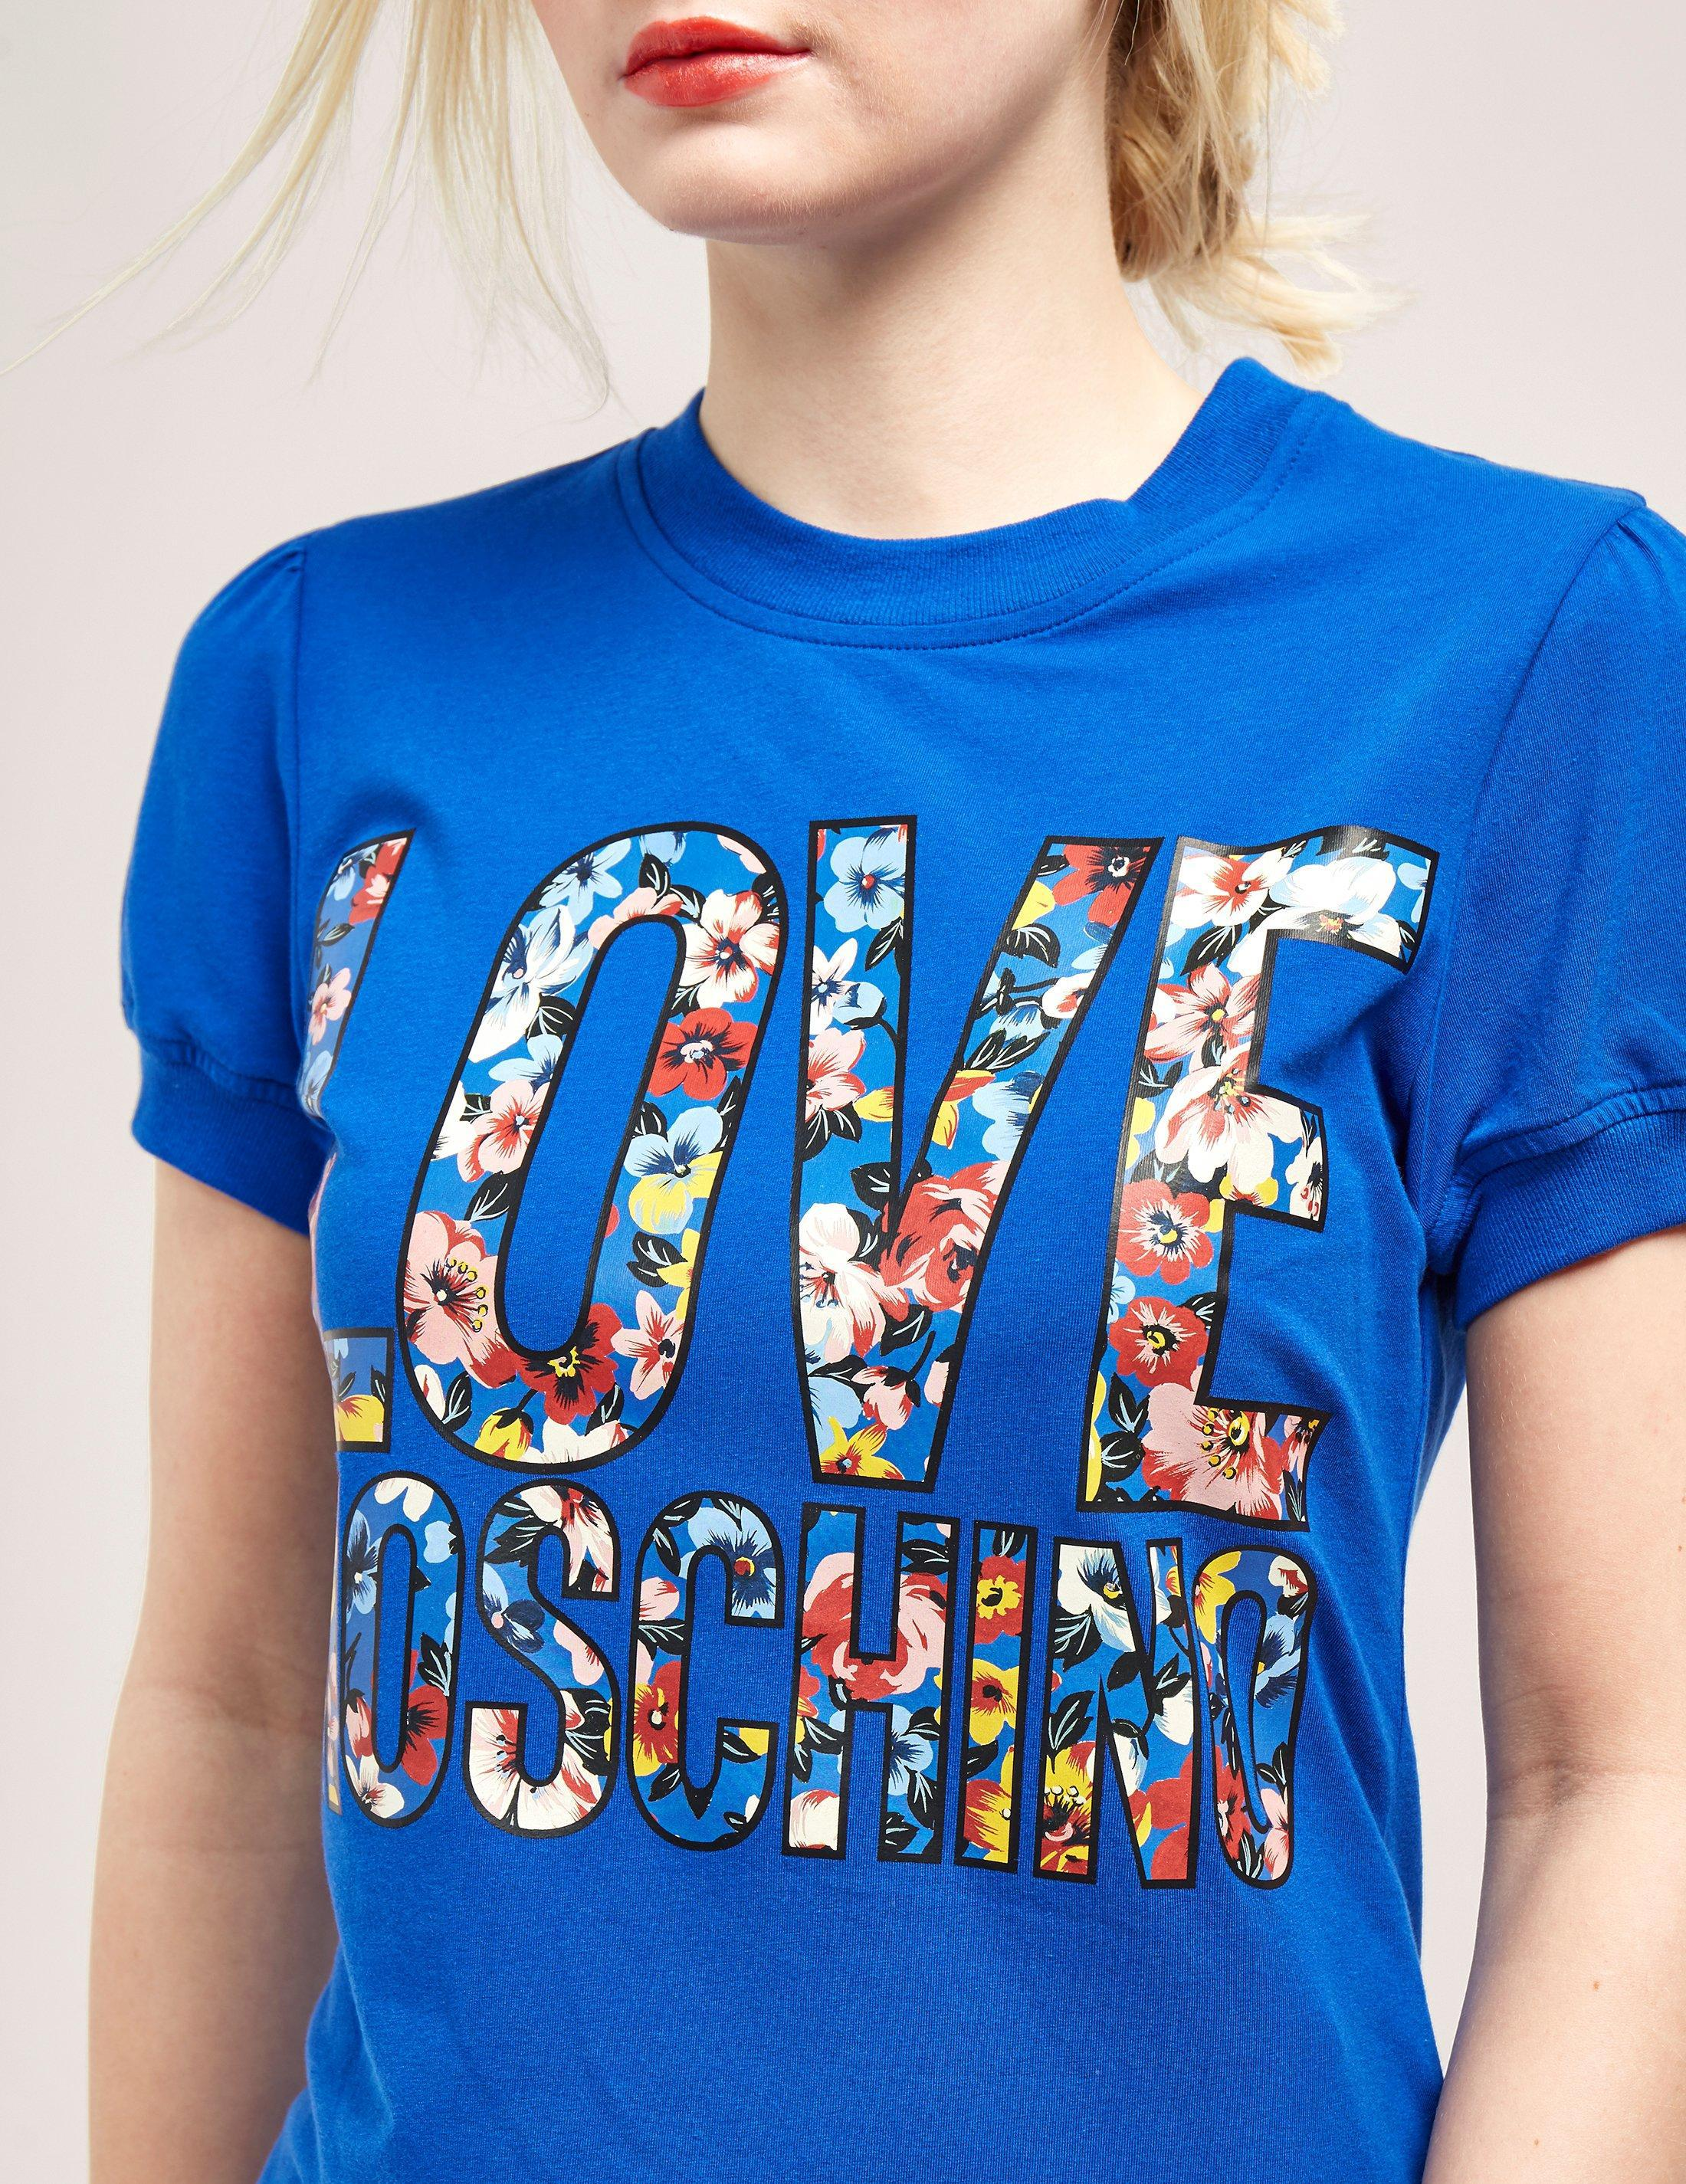 Lyst Floral Blue Love Short Shirt T In Moschino Sleeve nCFFa6xwZq